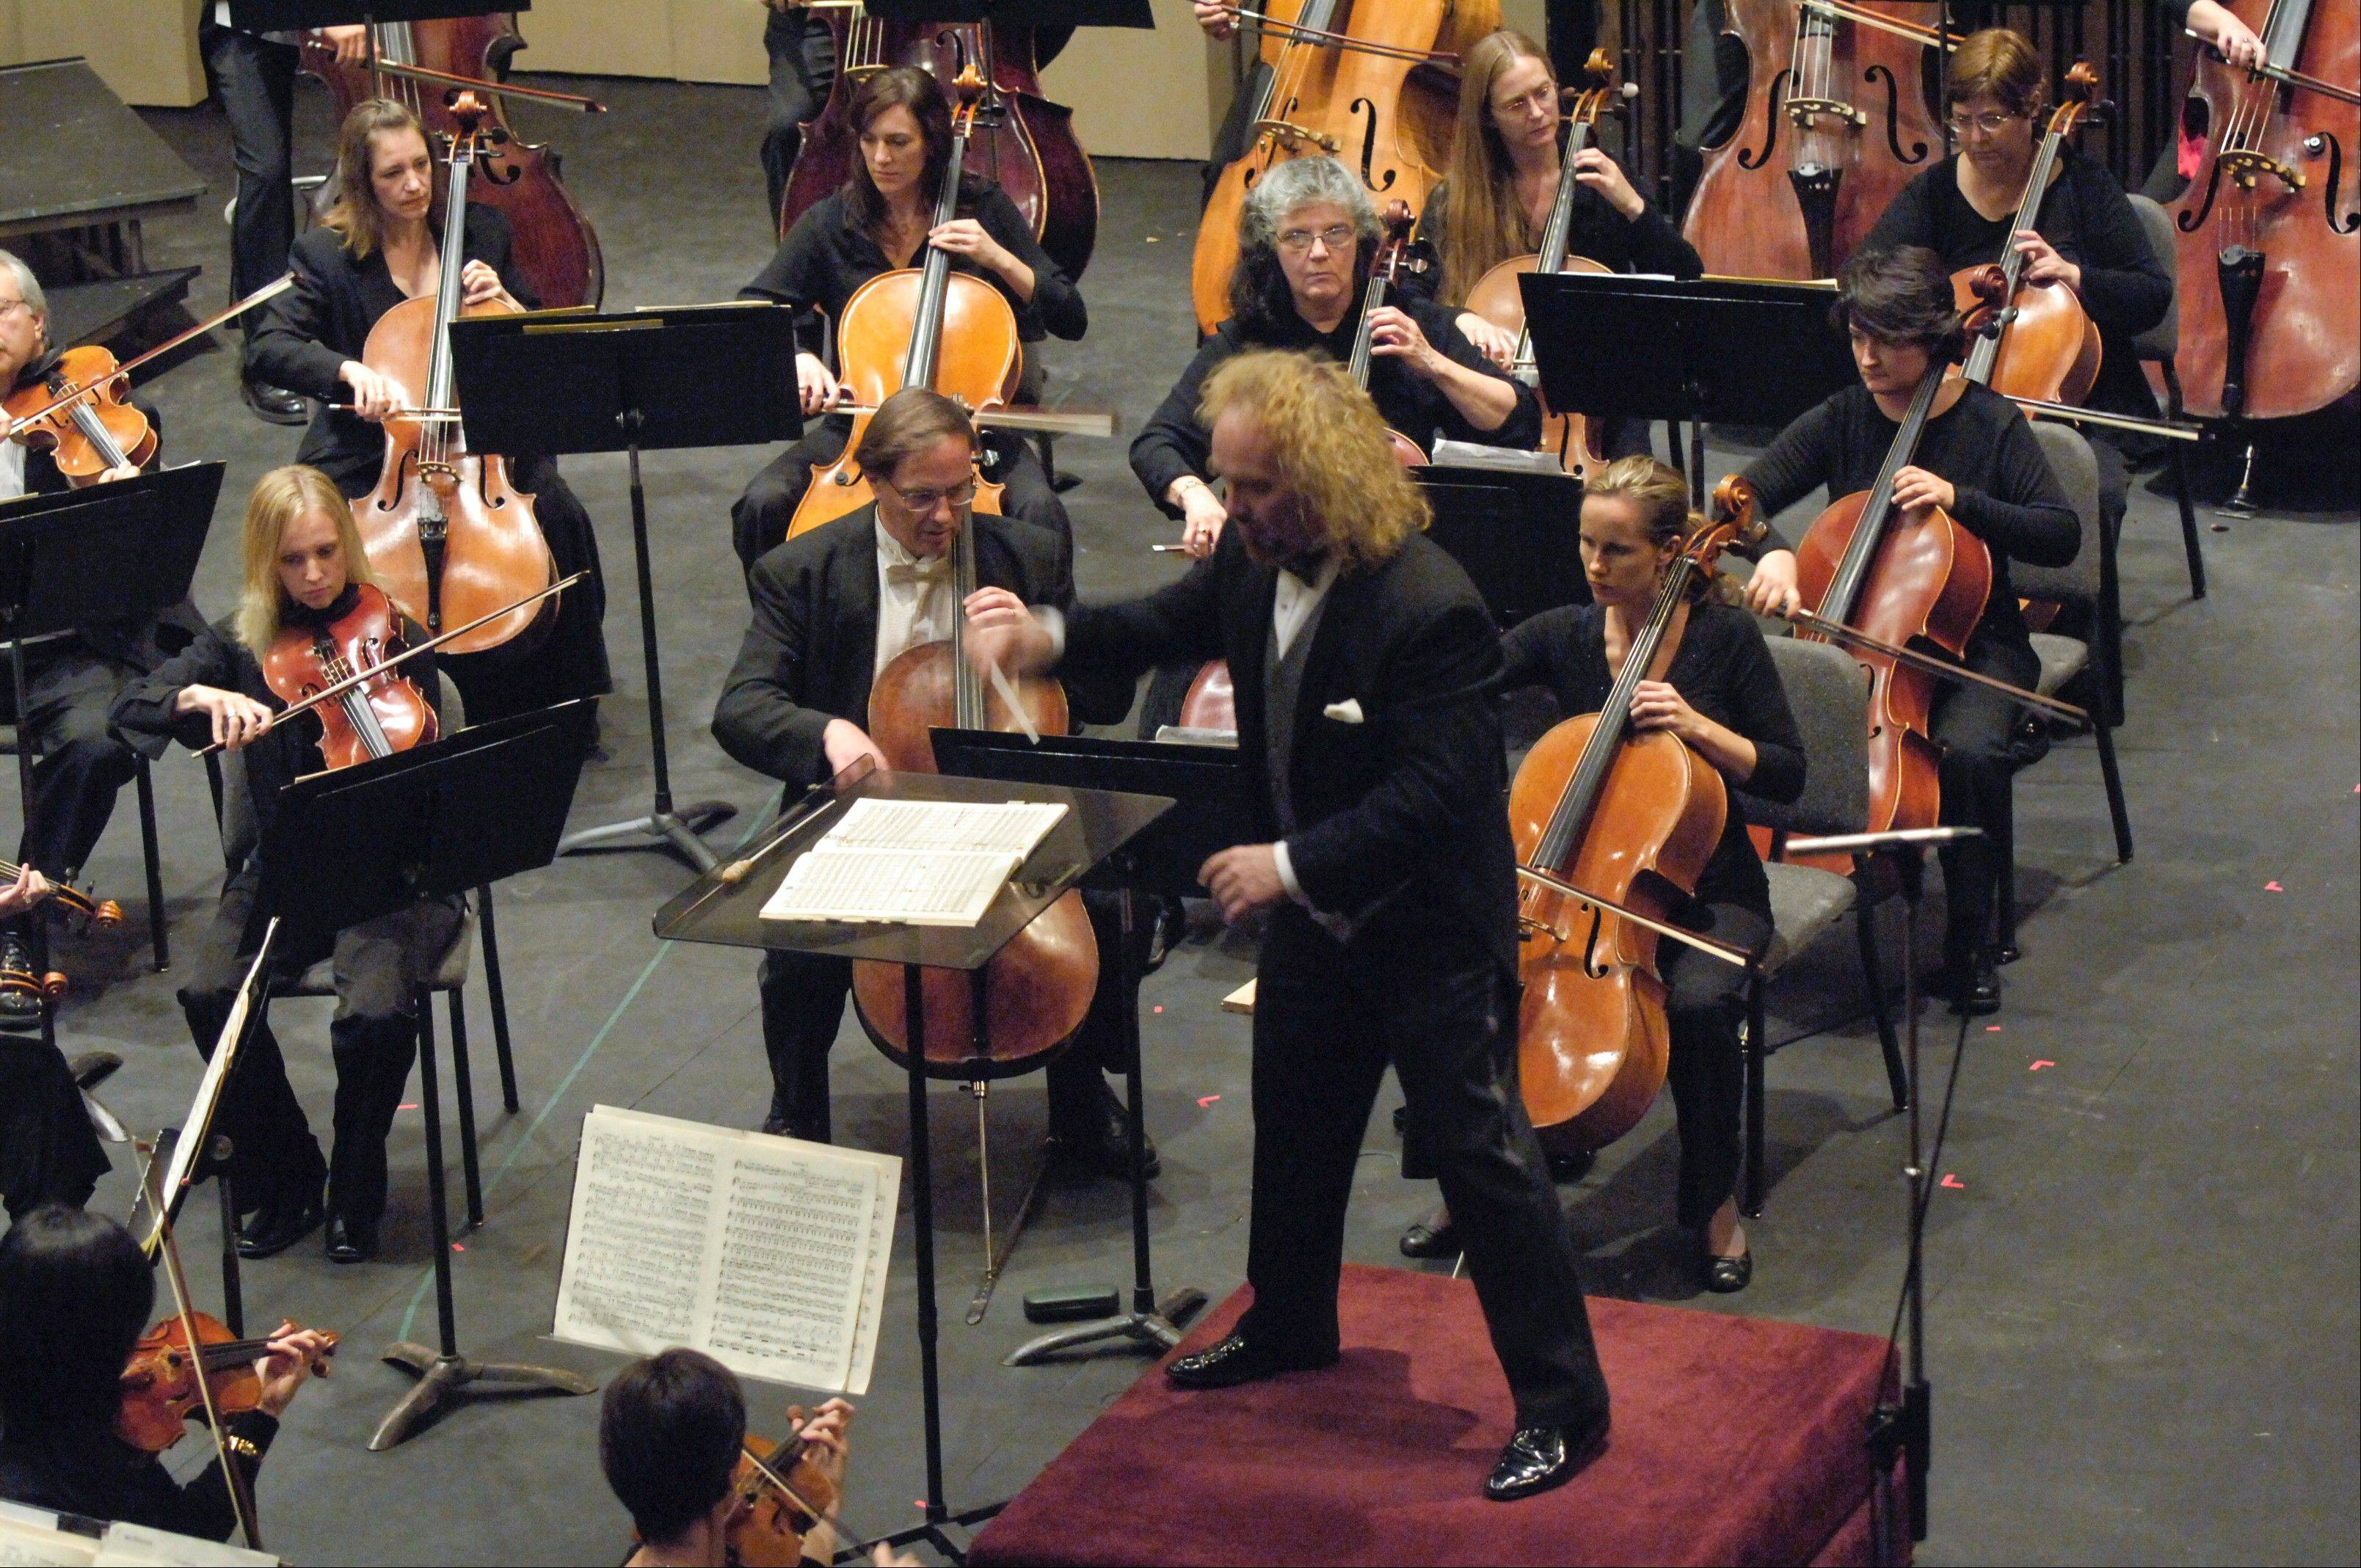 The New Philharmonic orchestra will be performing an abbreviated three-concert schedule in 2013-14, college officials announced. It appeared the orchestra was in jeopardy of giving its final performance last month.